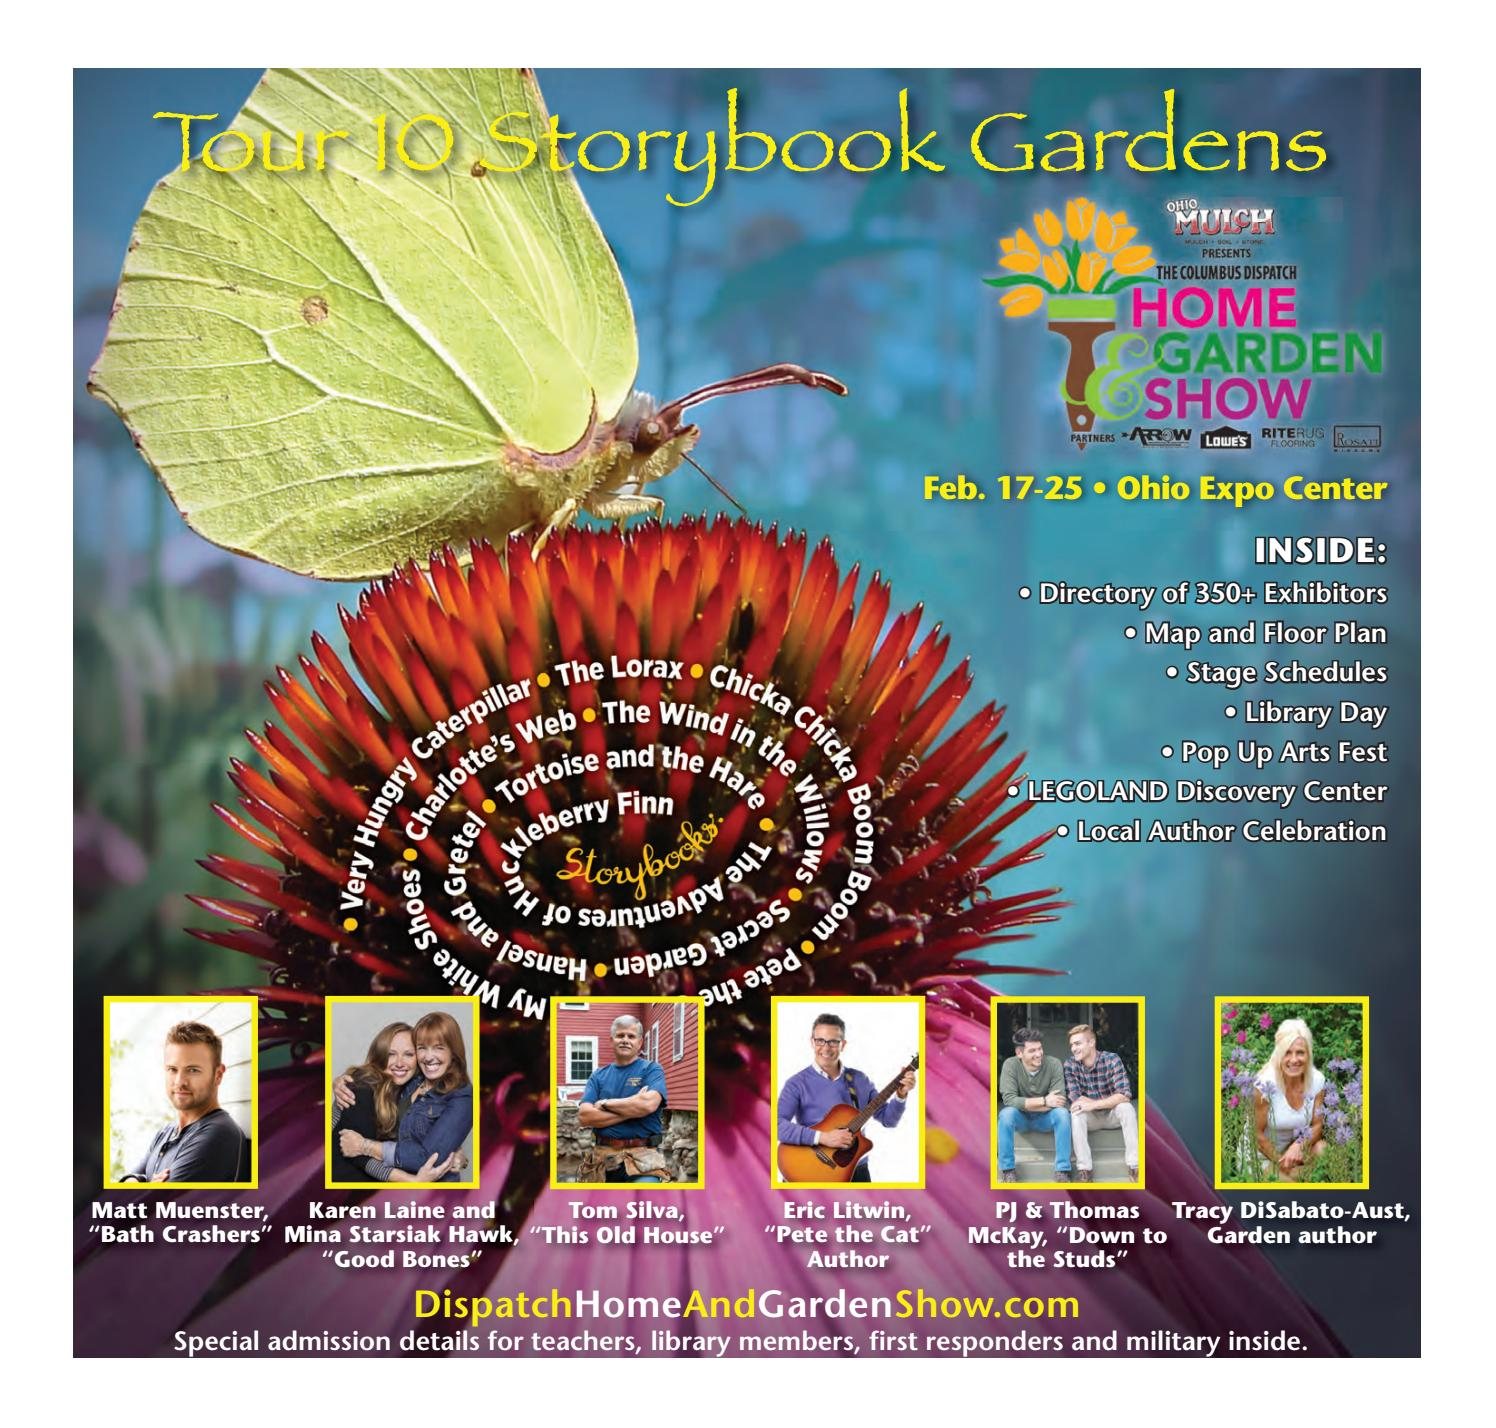 2018 Spring Home Garden Show Event Guide By The Columbus Dispatch Issuu